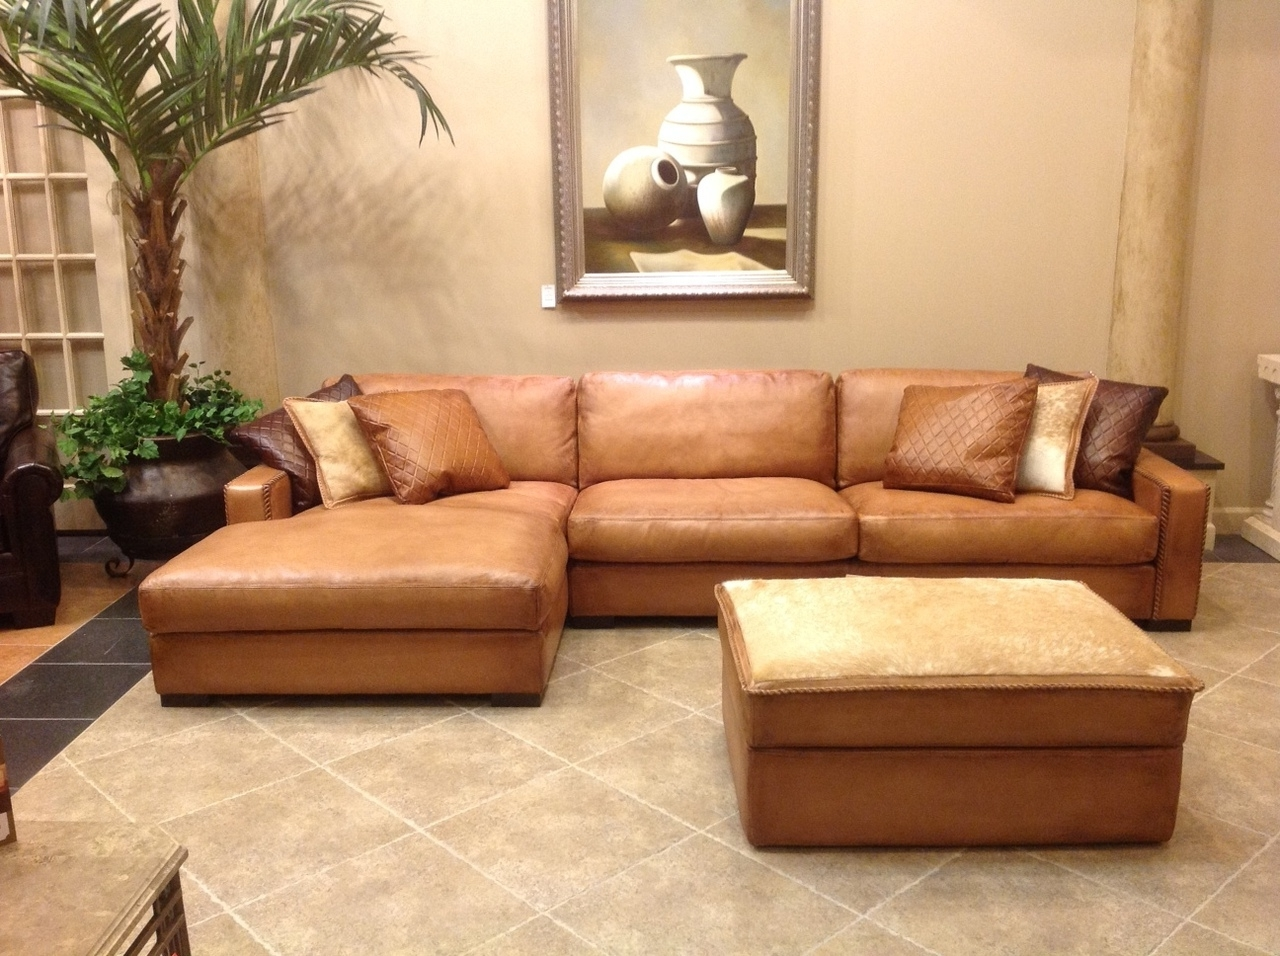 Furniture: Comfortable Deep Seat Sectional For Your Living Room With Famous Leather Chaise Sectionals (View 4 of 15)